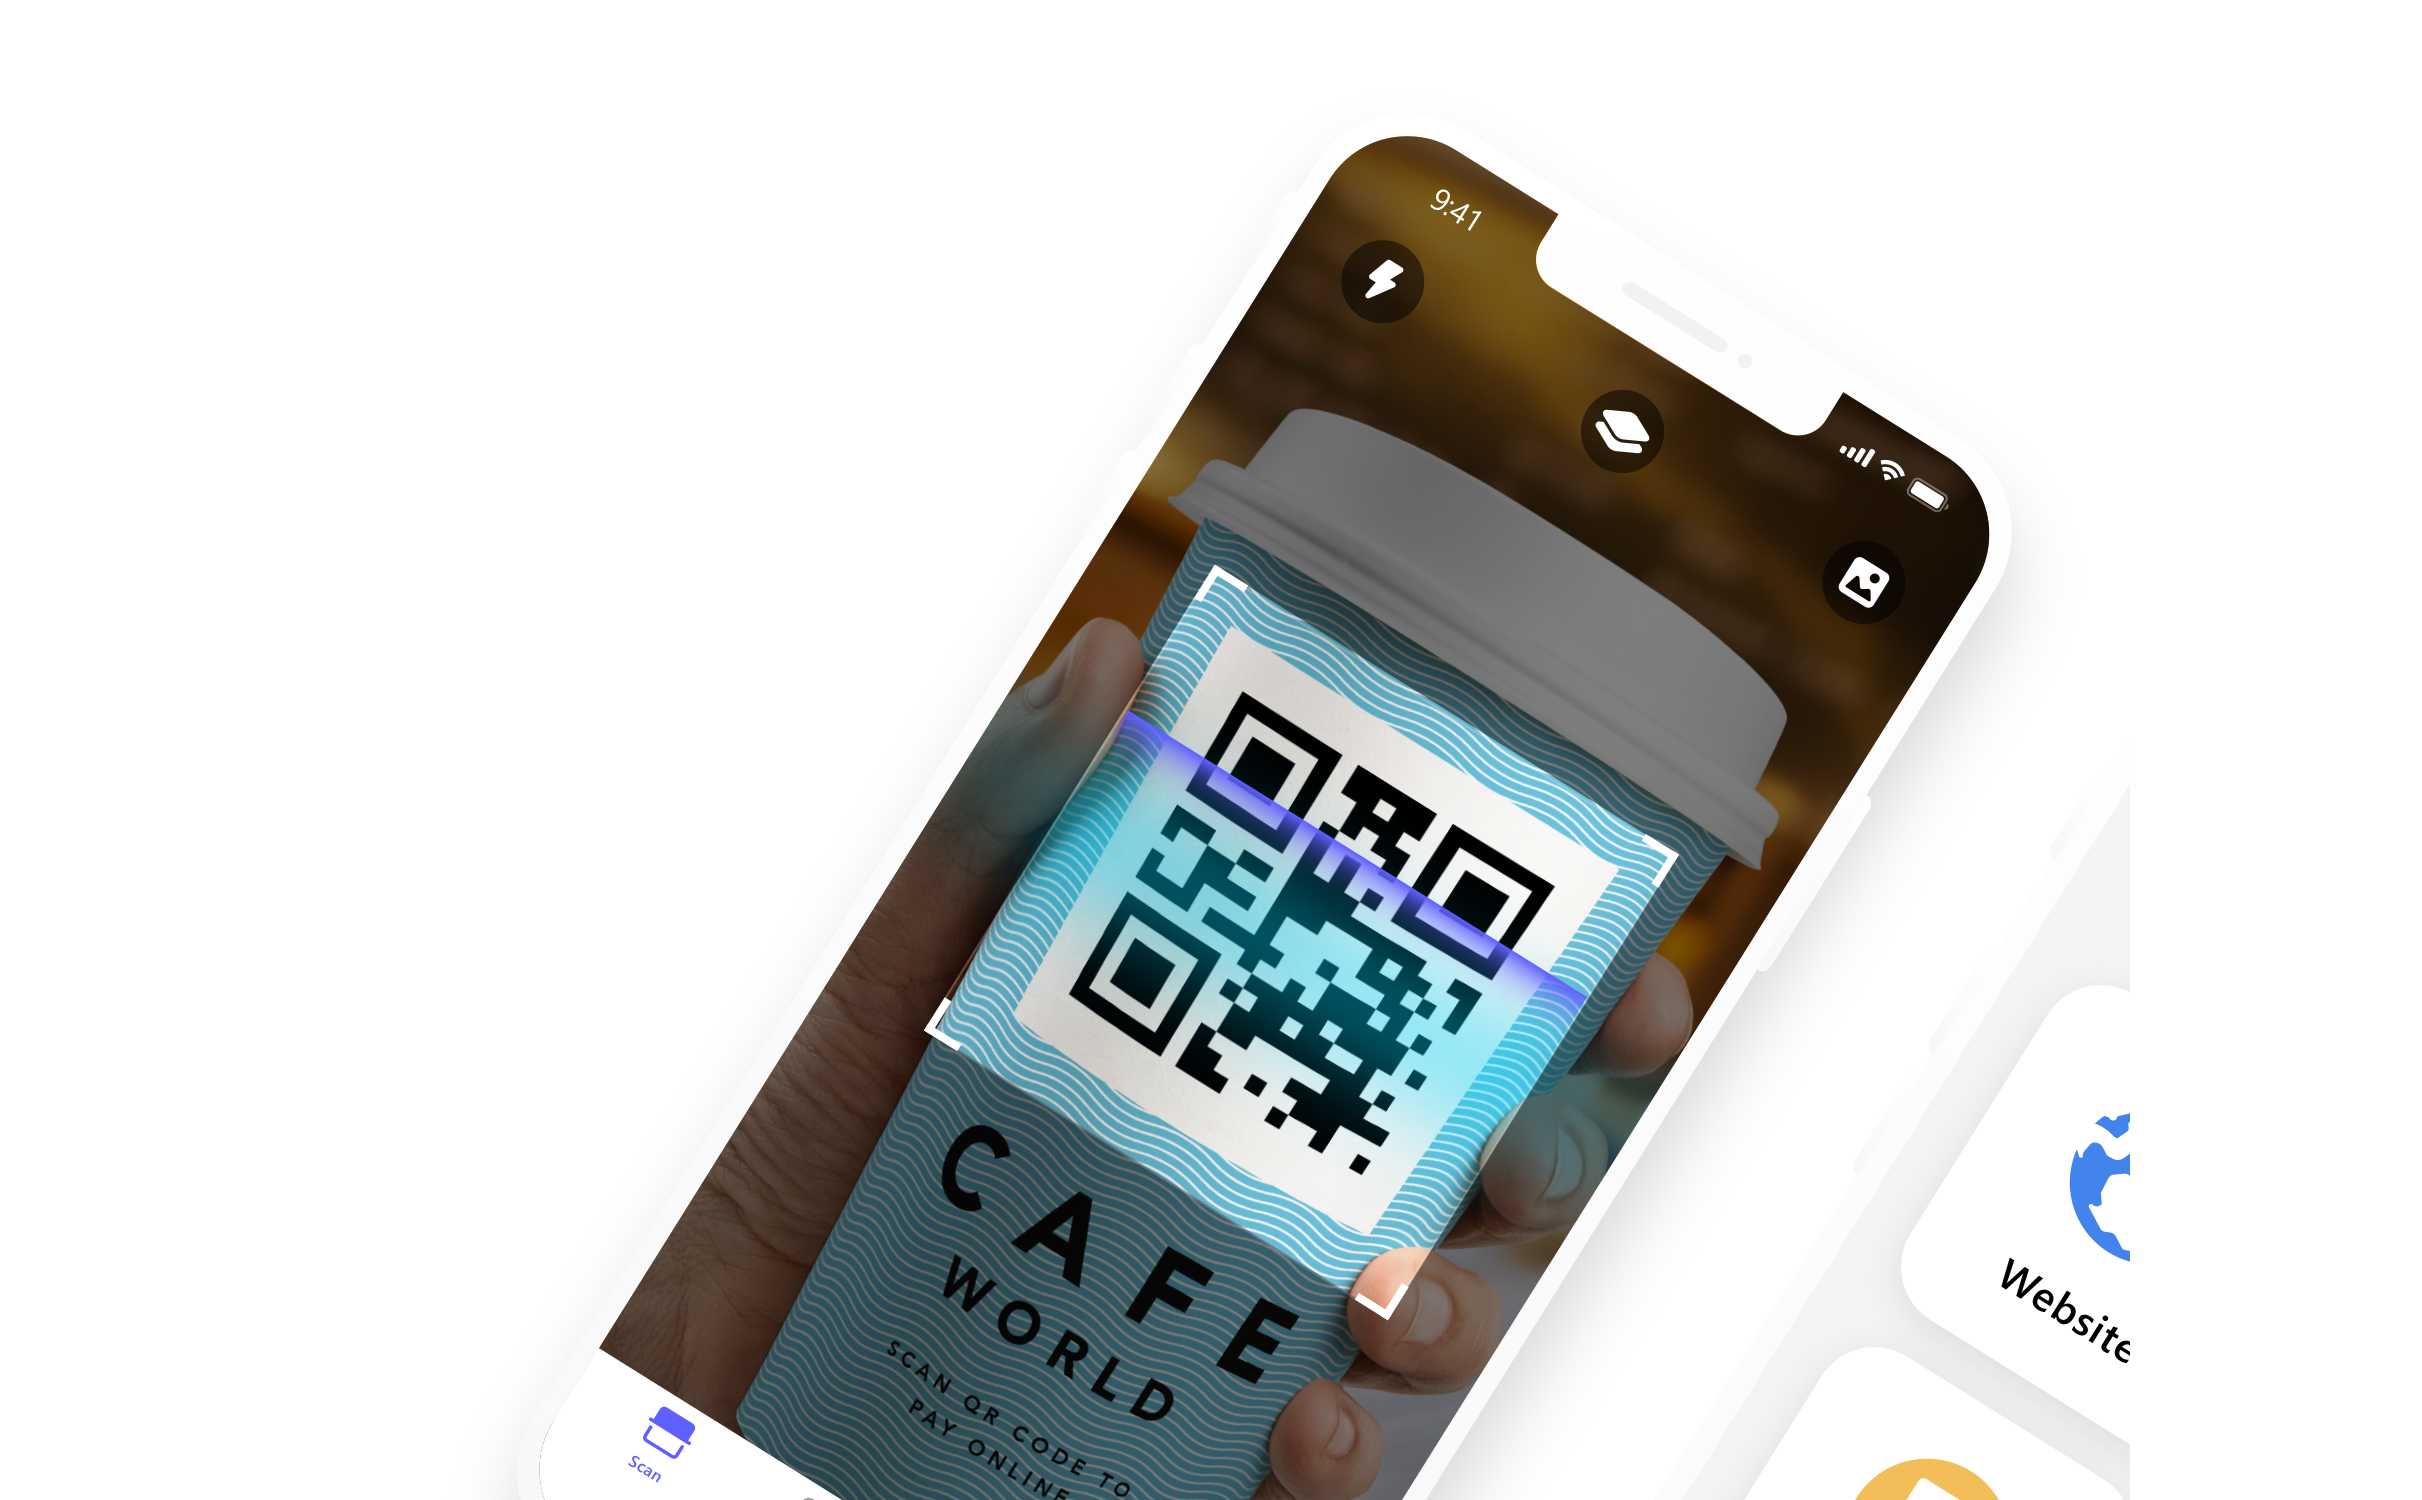 Best QR Code Reader App for iPhone and iPad